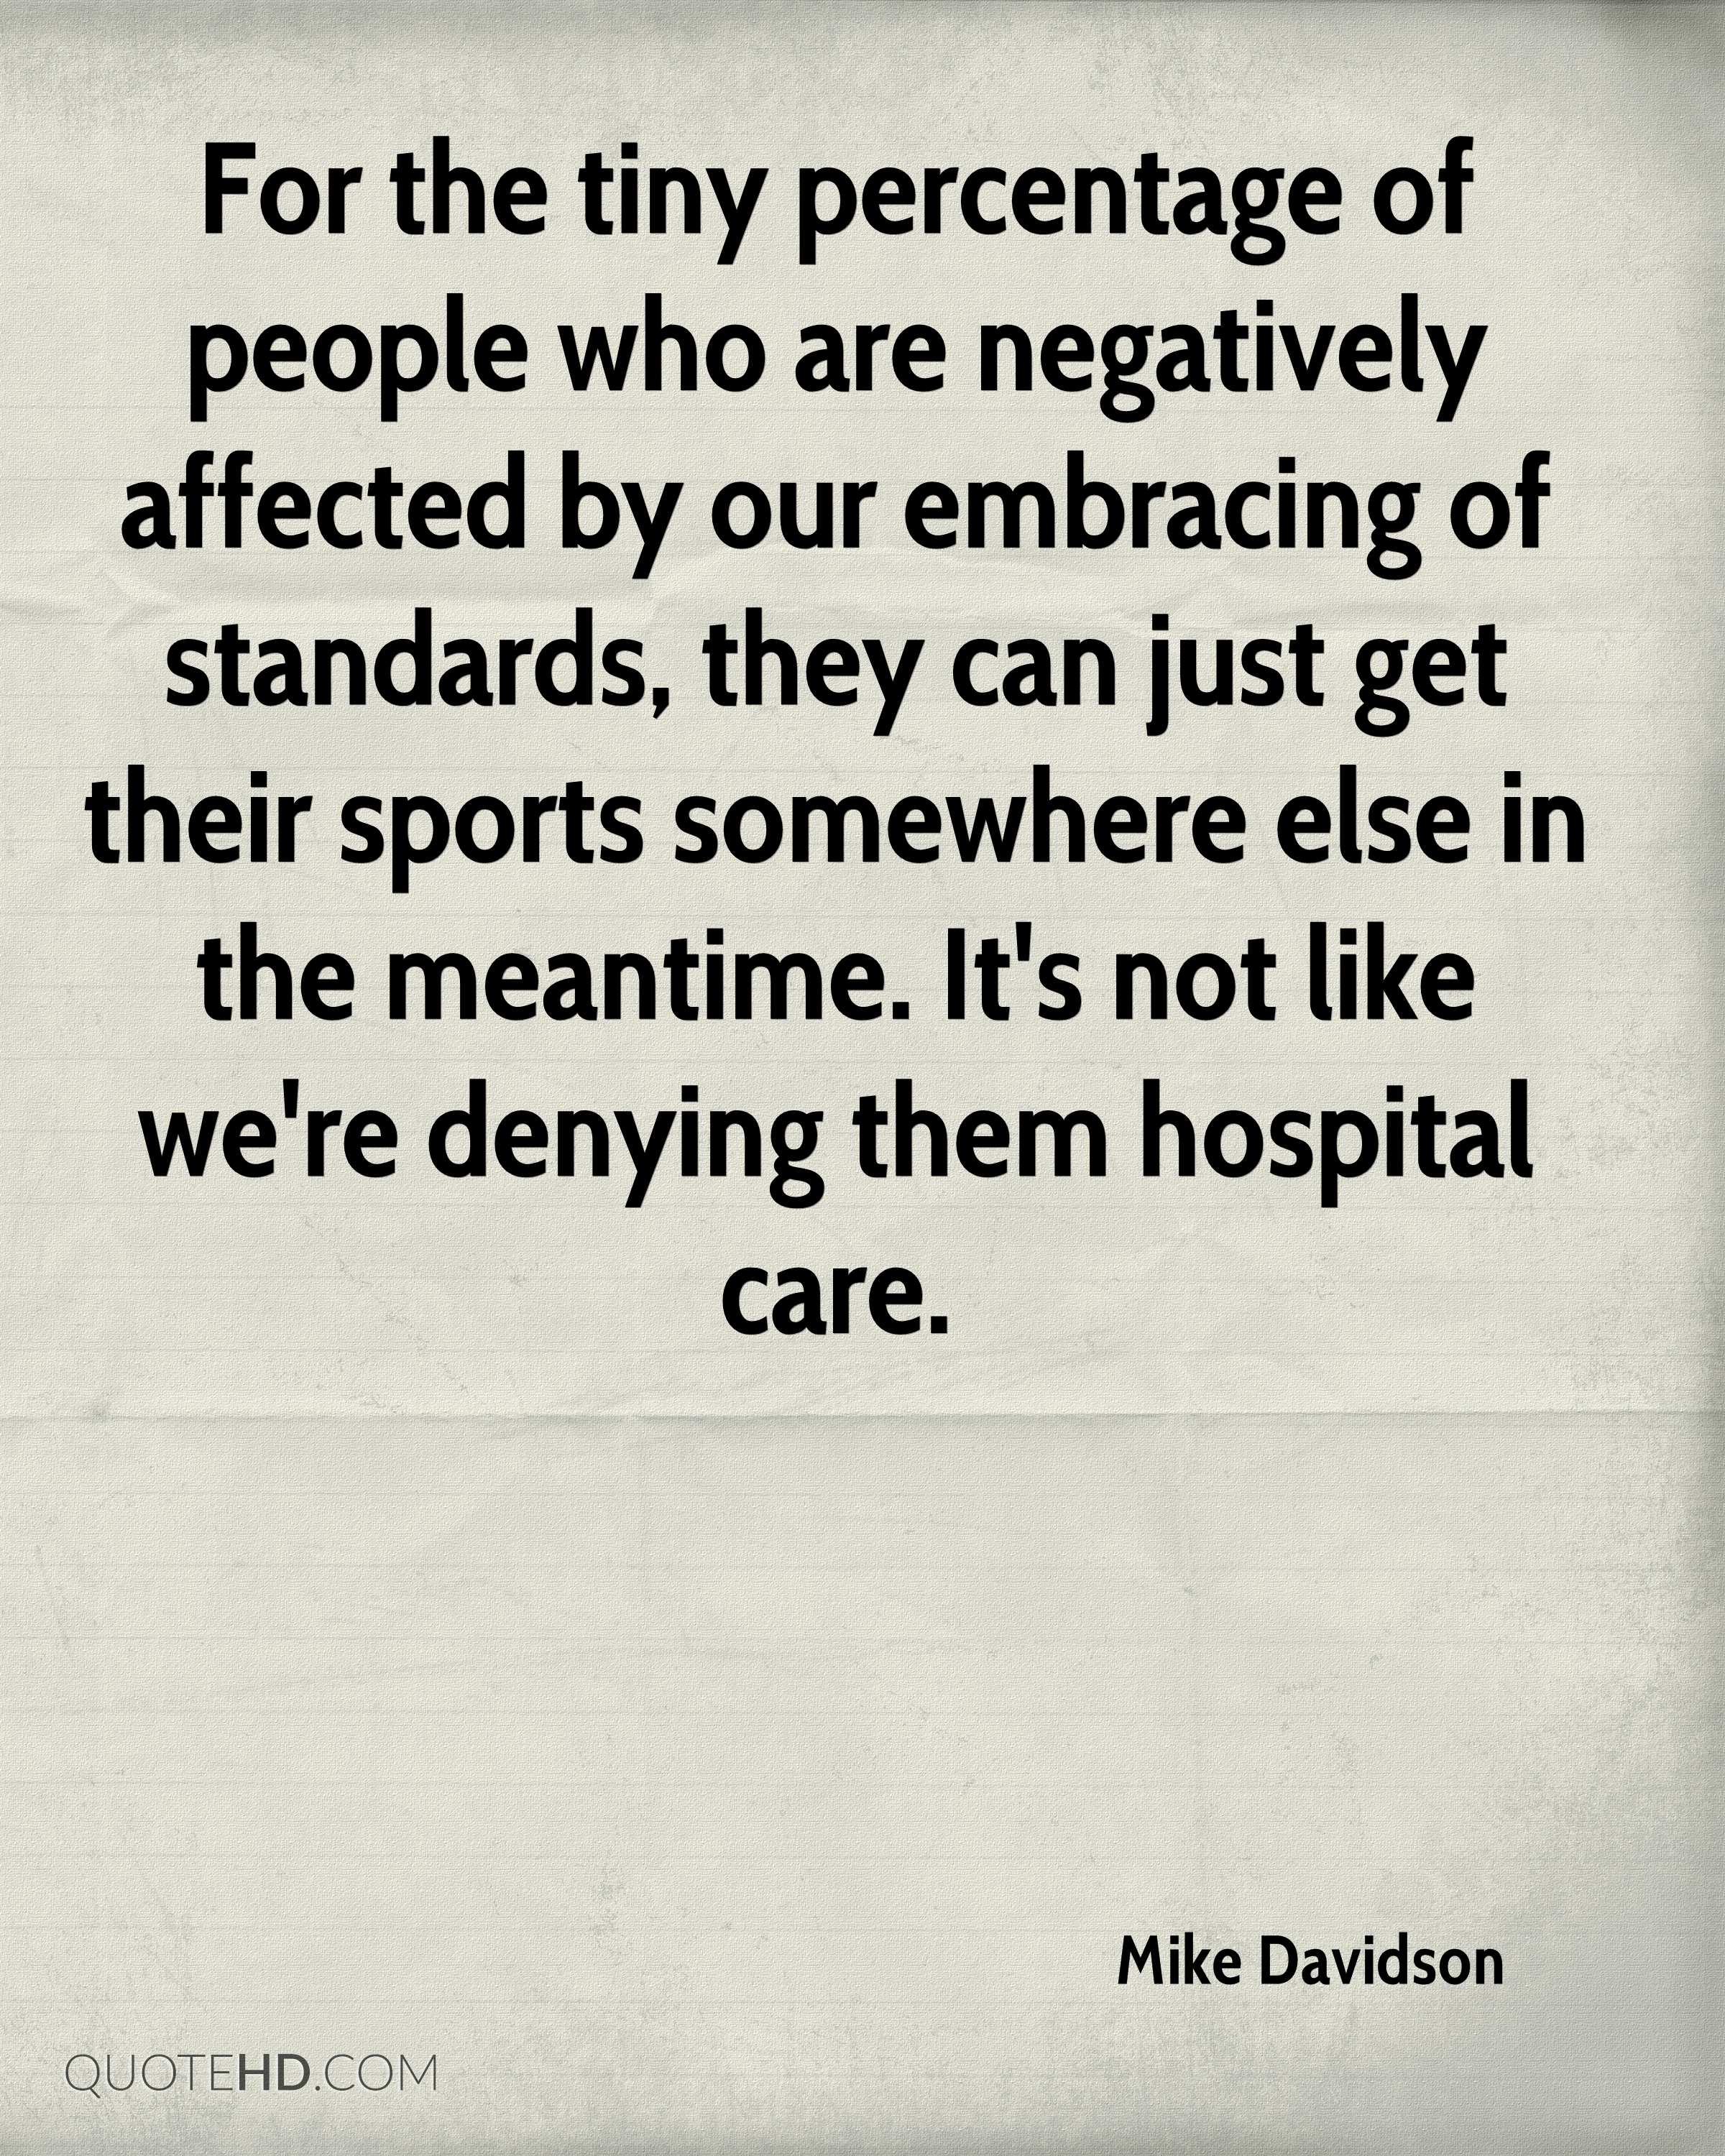 For the tiny percentage of people who are negatively affected by our embracing of standards, they can just get their sports somewhere else in the meantime. It's not like we're denying them hospital care.